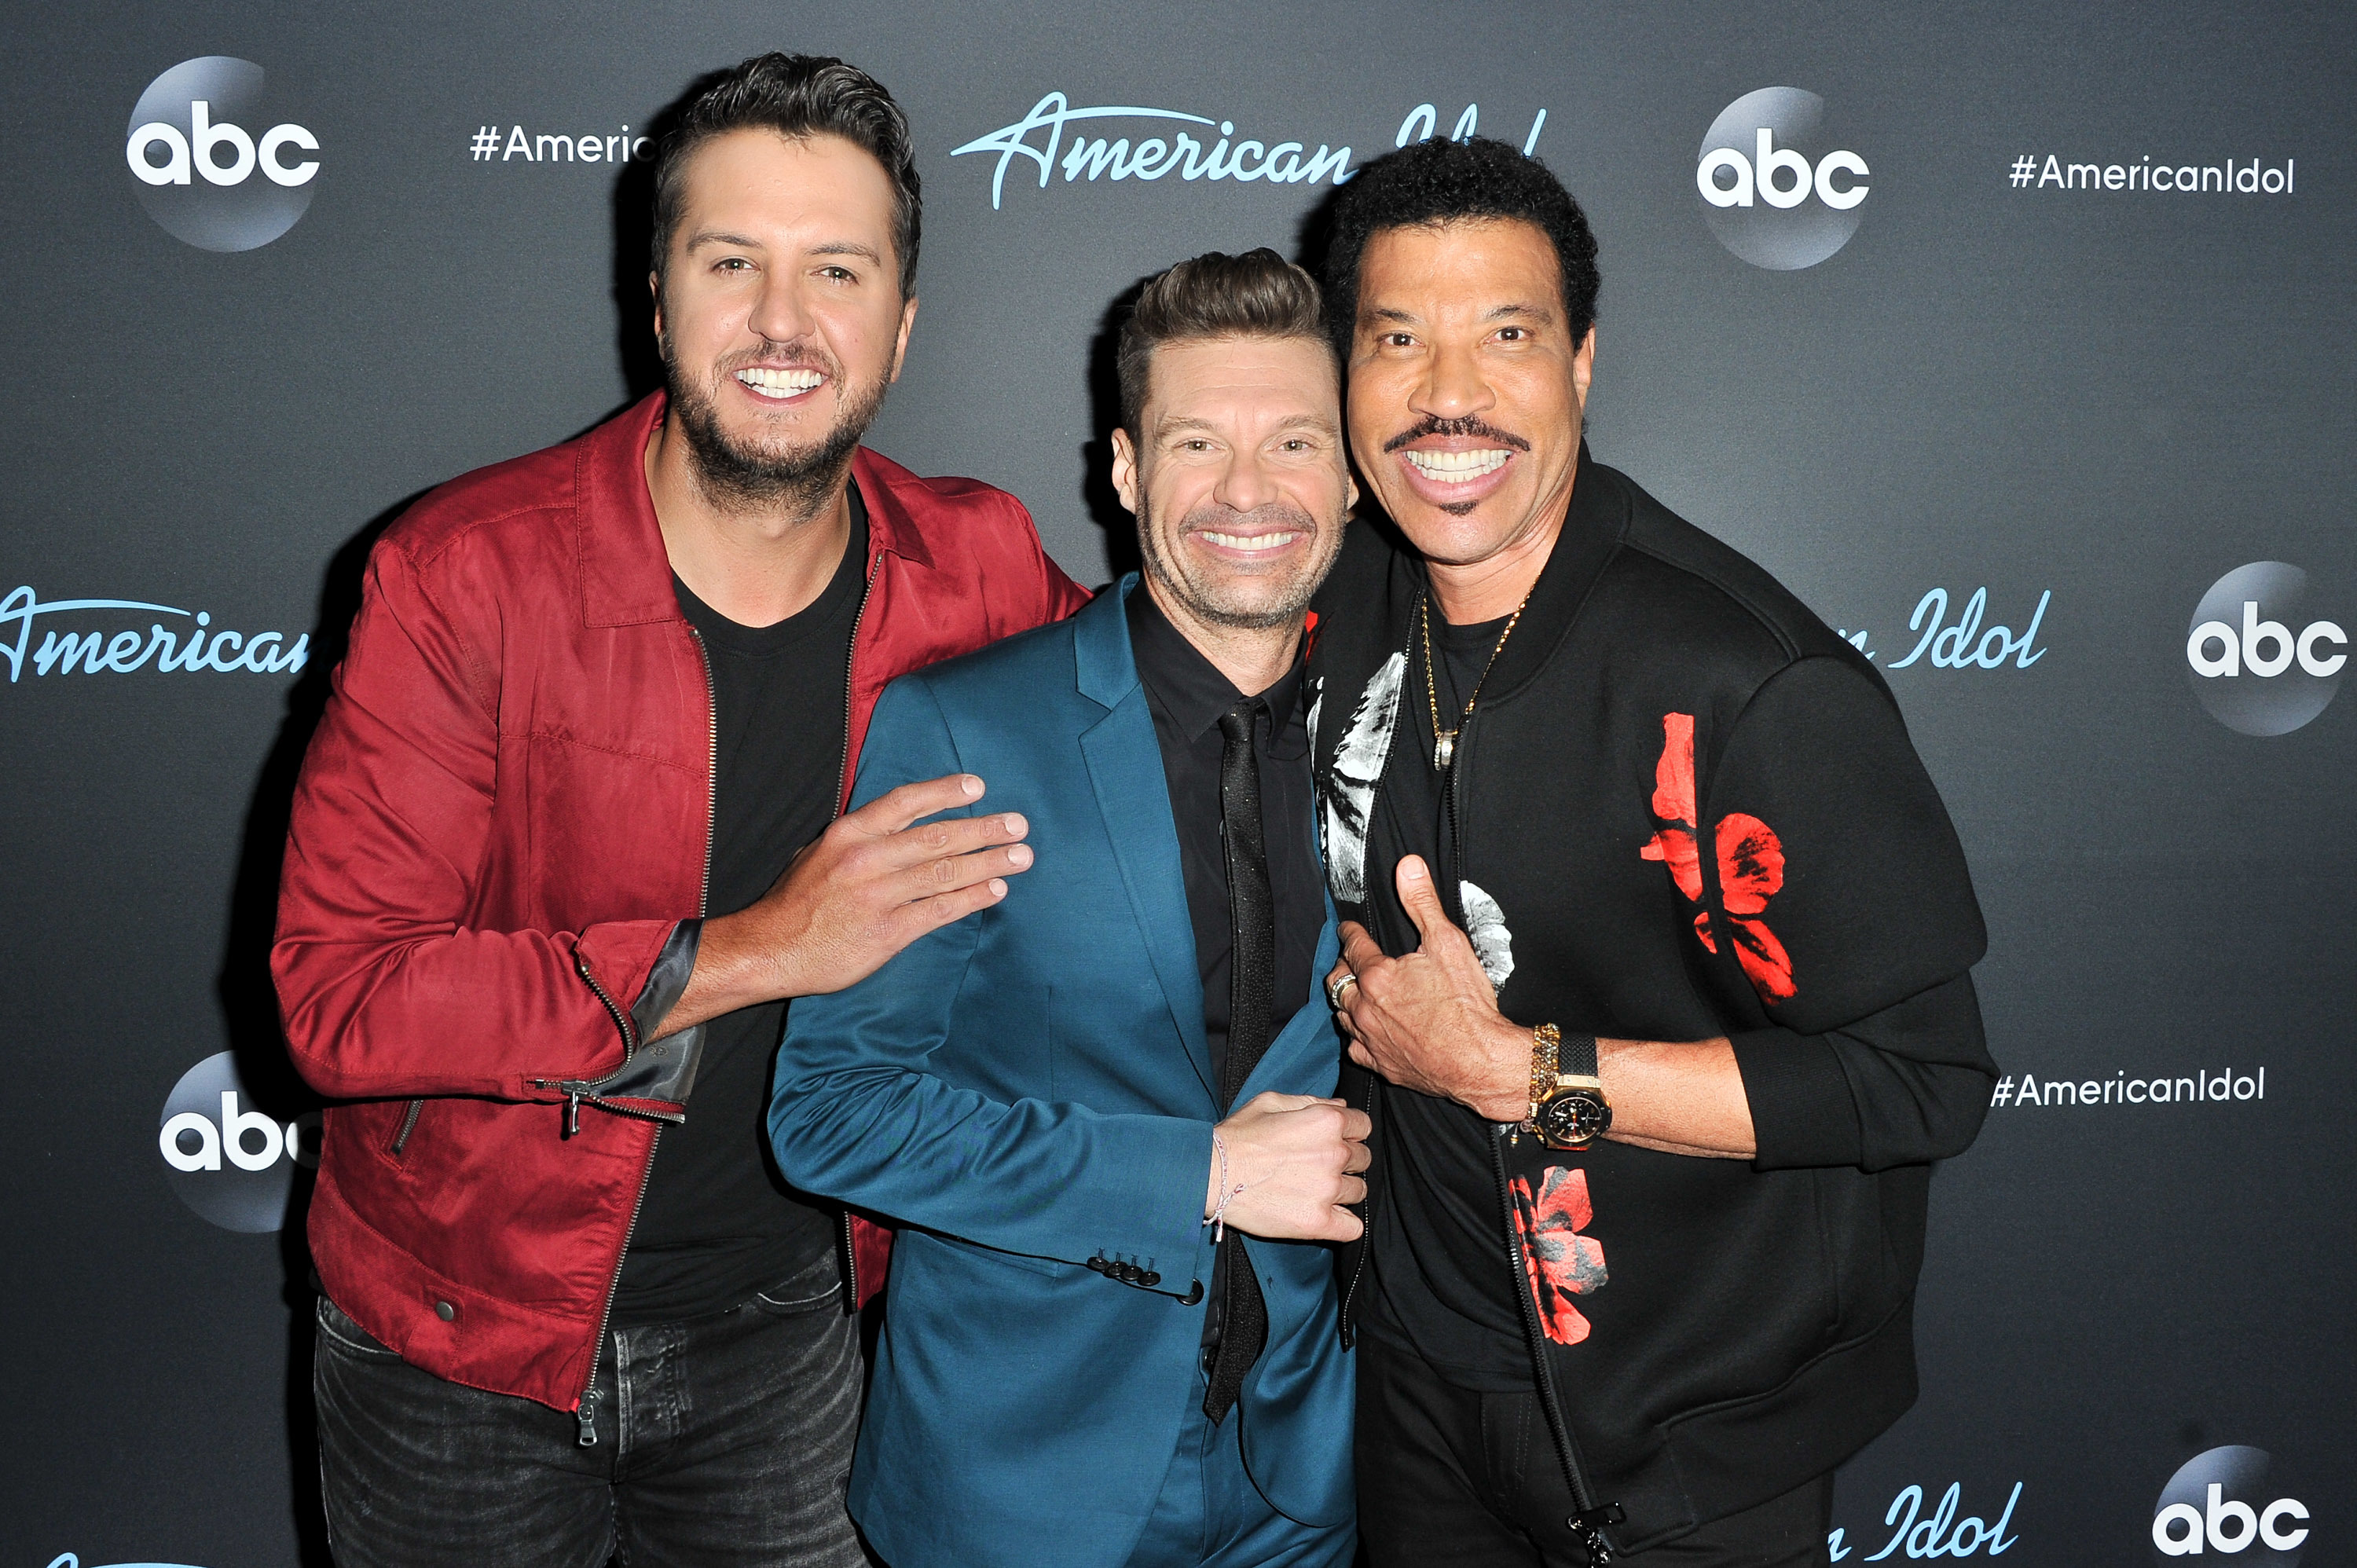 """Luke Bryan, Ryan Seacrest and Lionel Richie pose for a photo after ABC's """"American Idol"""" live show in Los Angeles on April 15, 2019."""